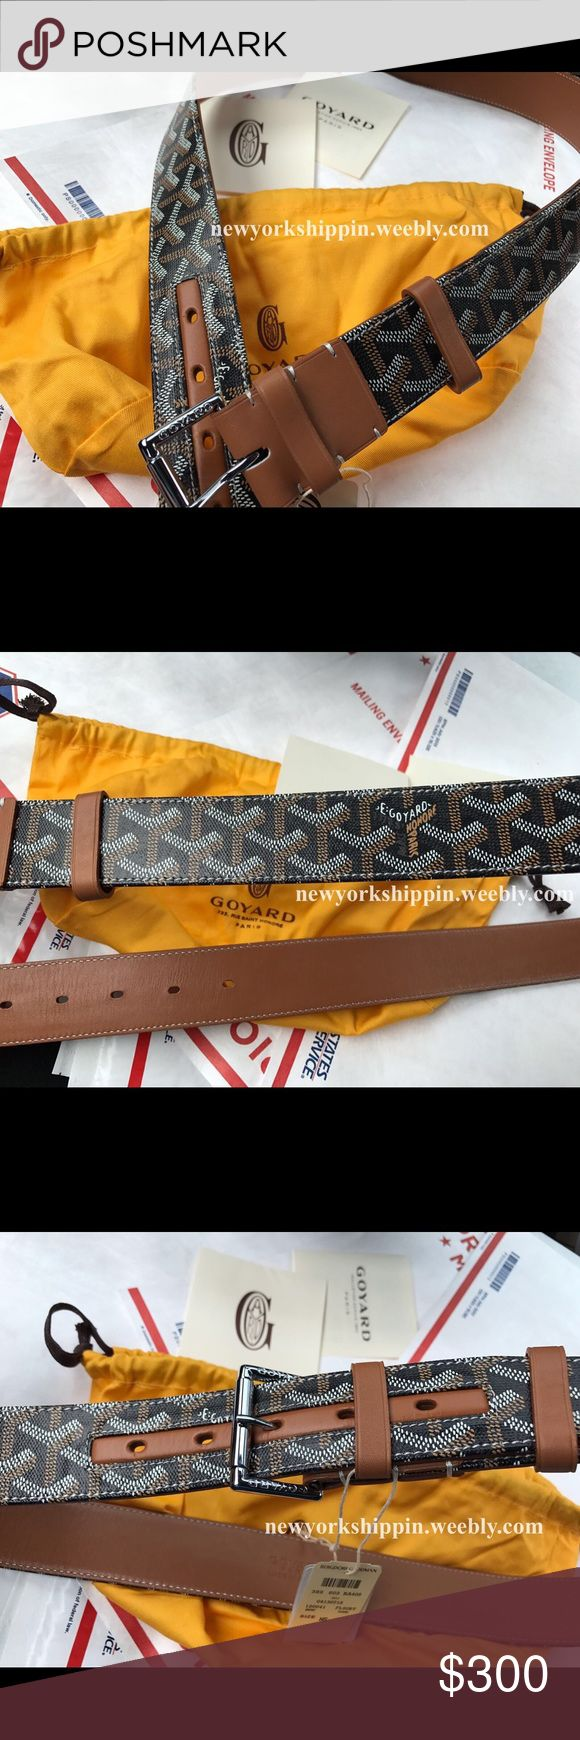 Brown monogram goyard belt Official men's brown monogram goyard belt. Visit website to purchase for $119.99 including priority shipping. PayPal Accepted. 1-3 days delivery. Shop with confidence. 100% Satisfaction Guaranteed. Goyard Accessories Belts